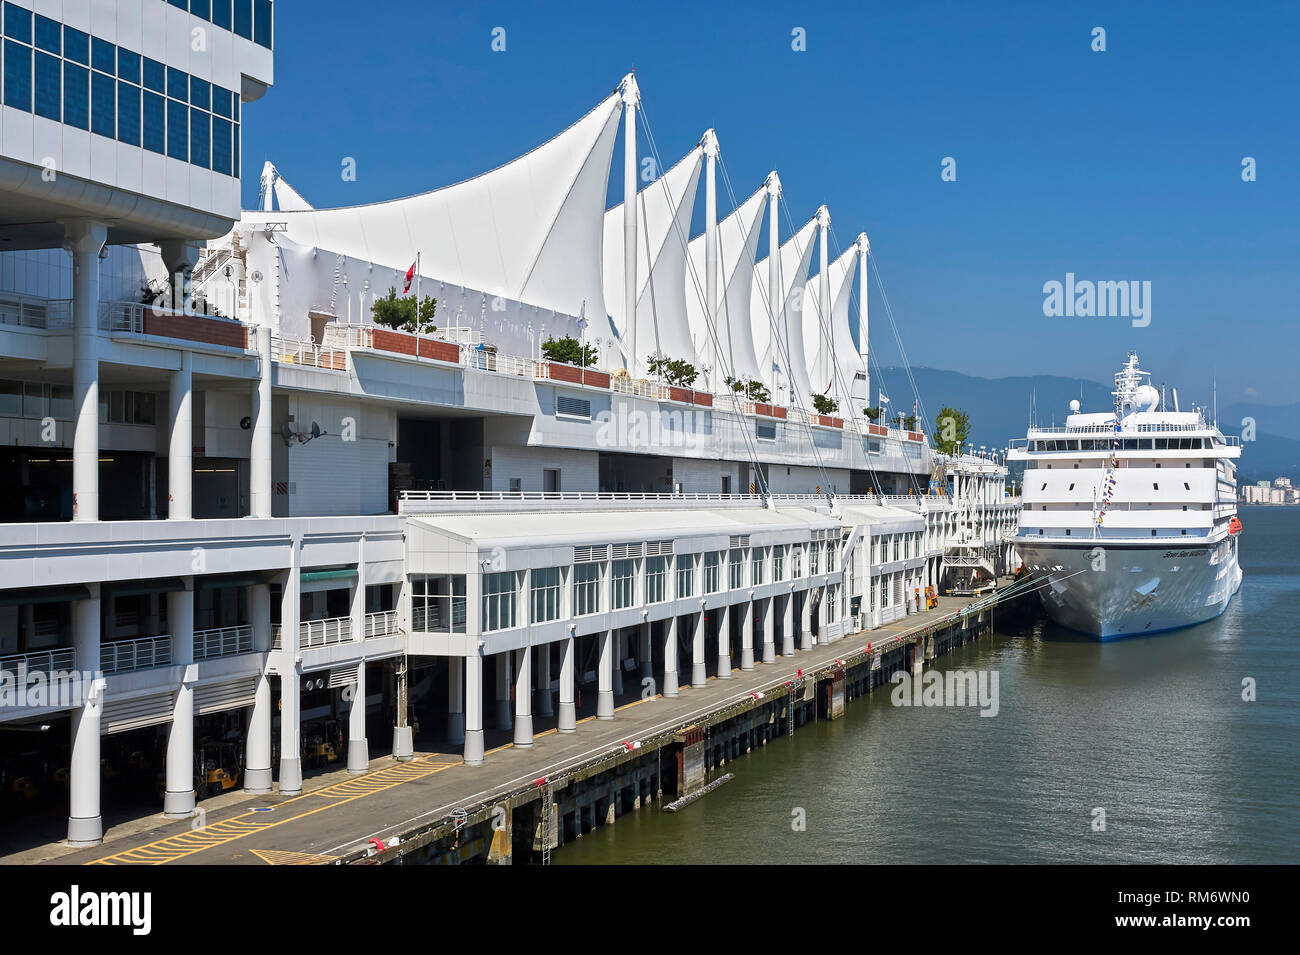 Vancouver, B.C., Canada - July 12, 2012: Canada Place Cruise Terminal at downtown Waterfront with its distinctive white sails, and dogged cruise ship - Stock Image